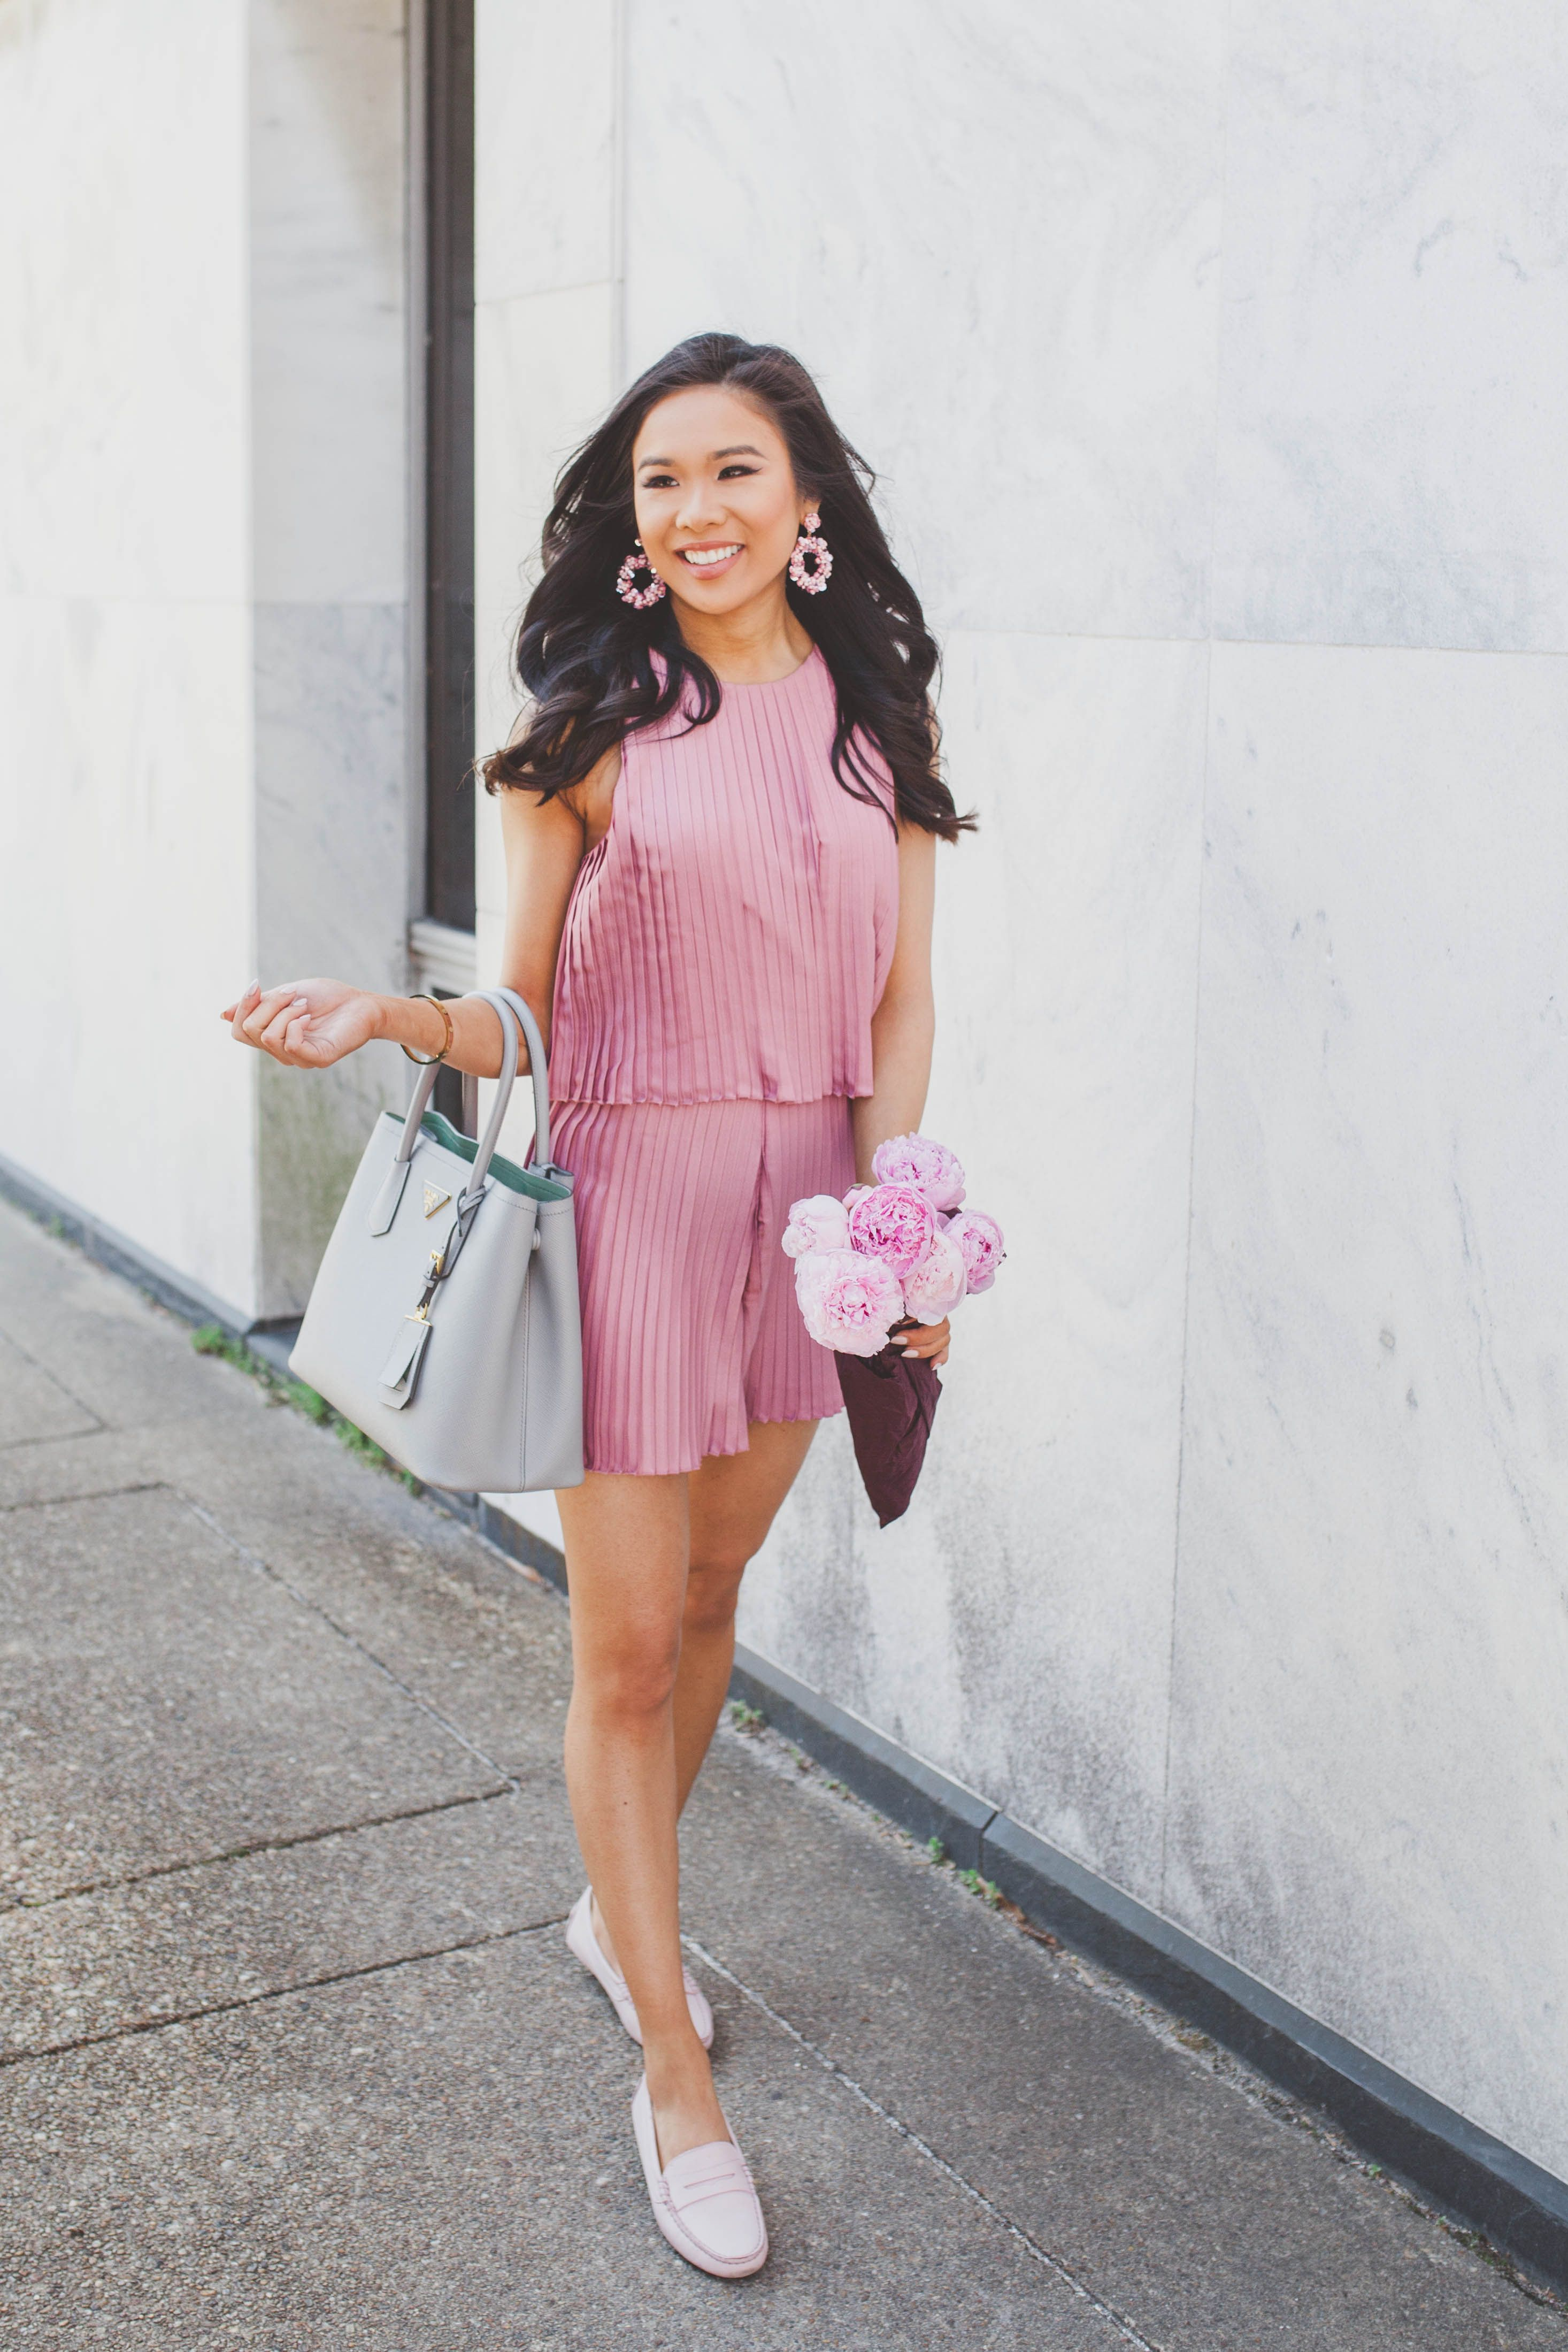 c3b5f189e237 Blogger Hoang-Kim wears a pink pleated romper with blush penny drivers and  pink peonies